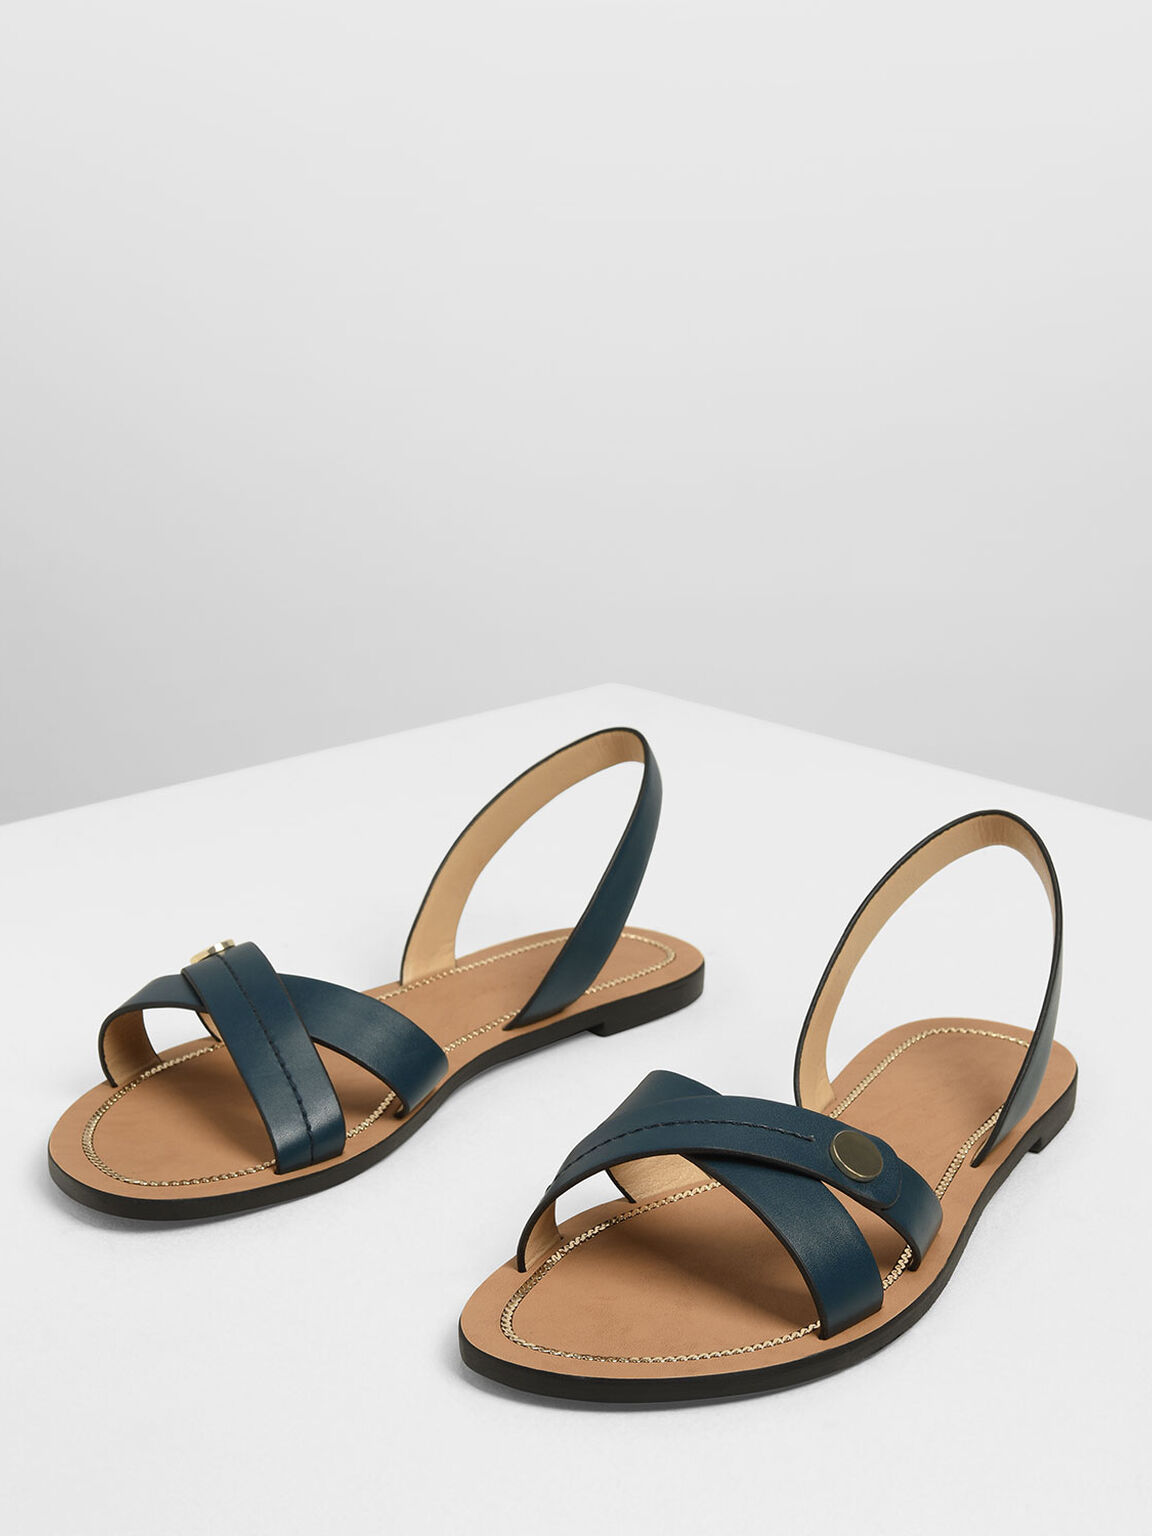 Button Detail Criss Cross Sandals, Teal, hi-res